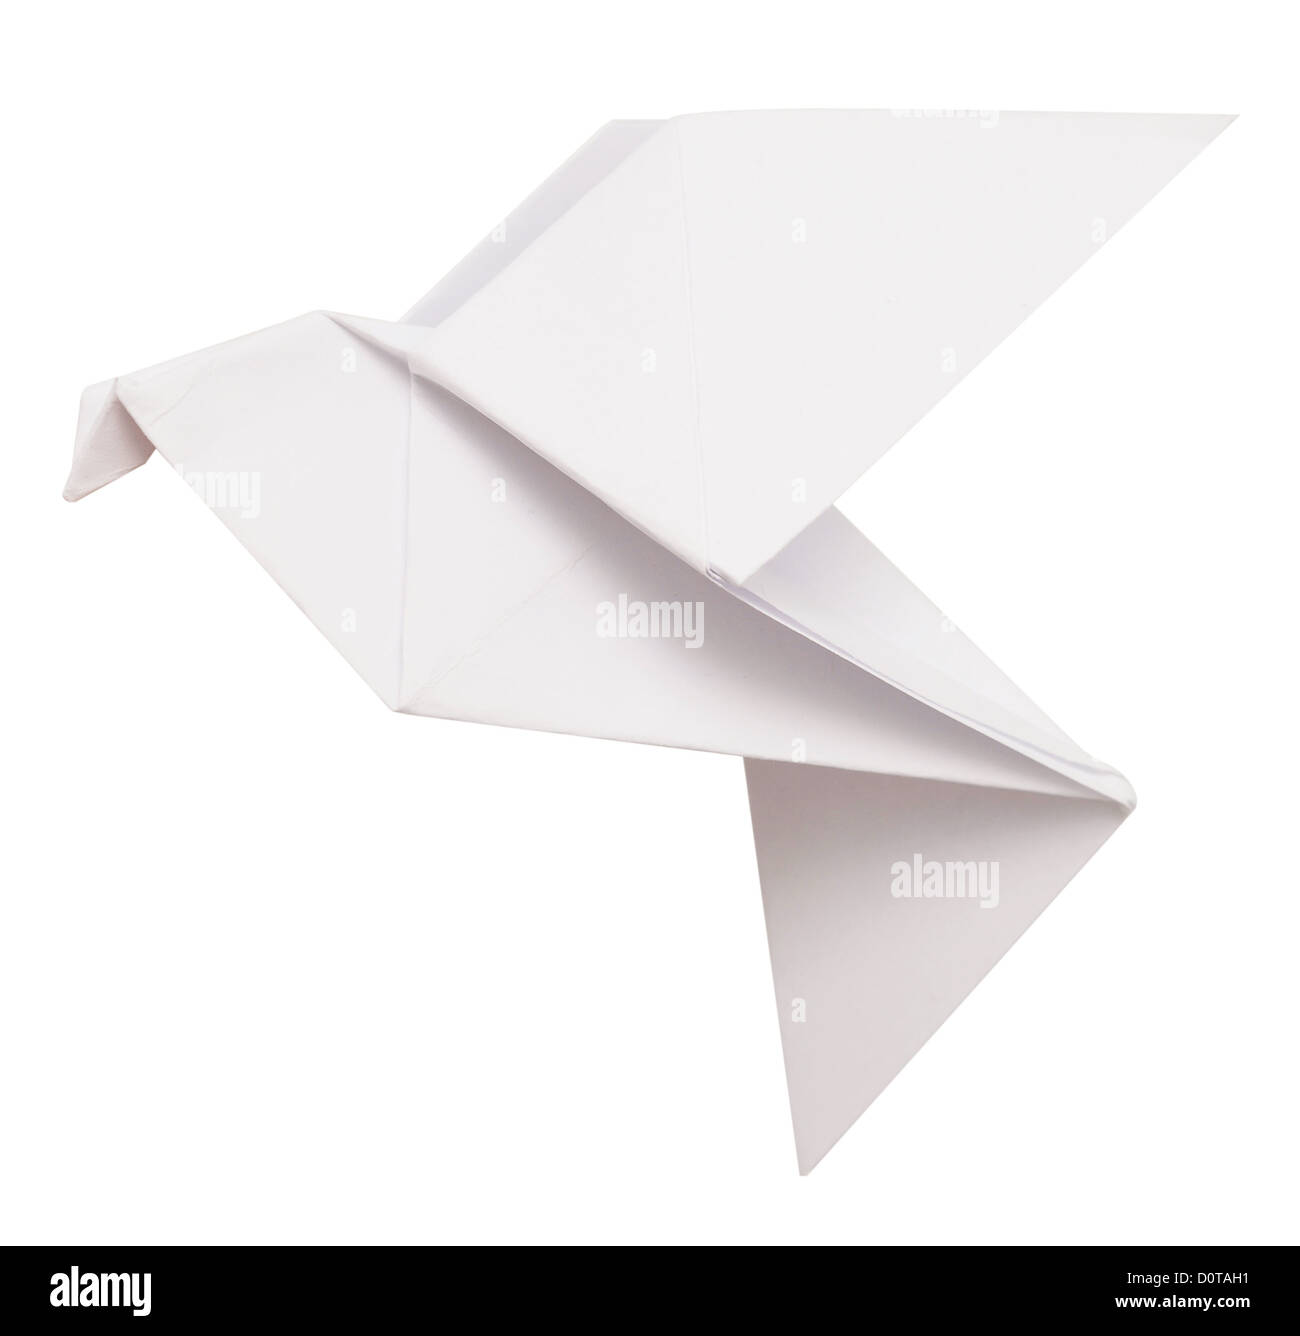 Origami Dove Isolated On White